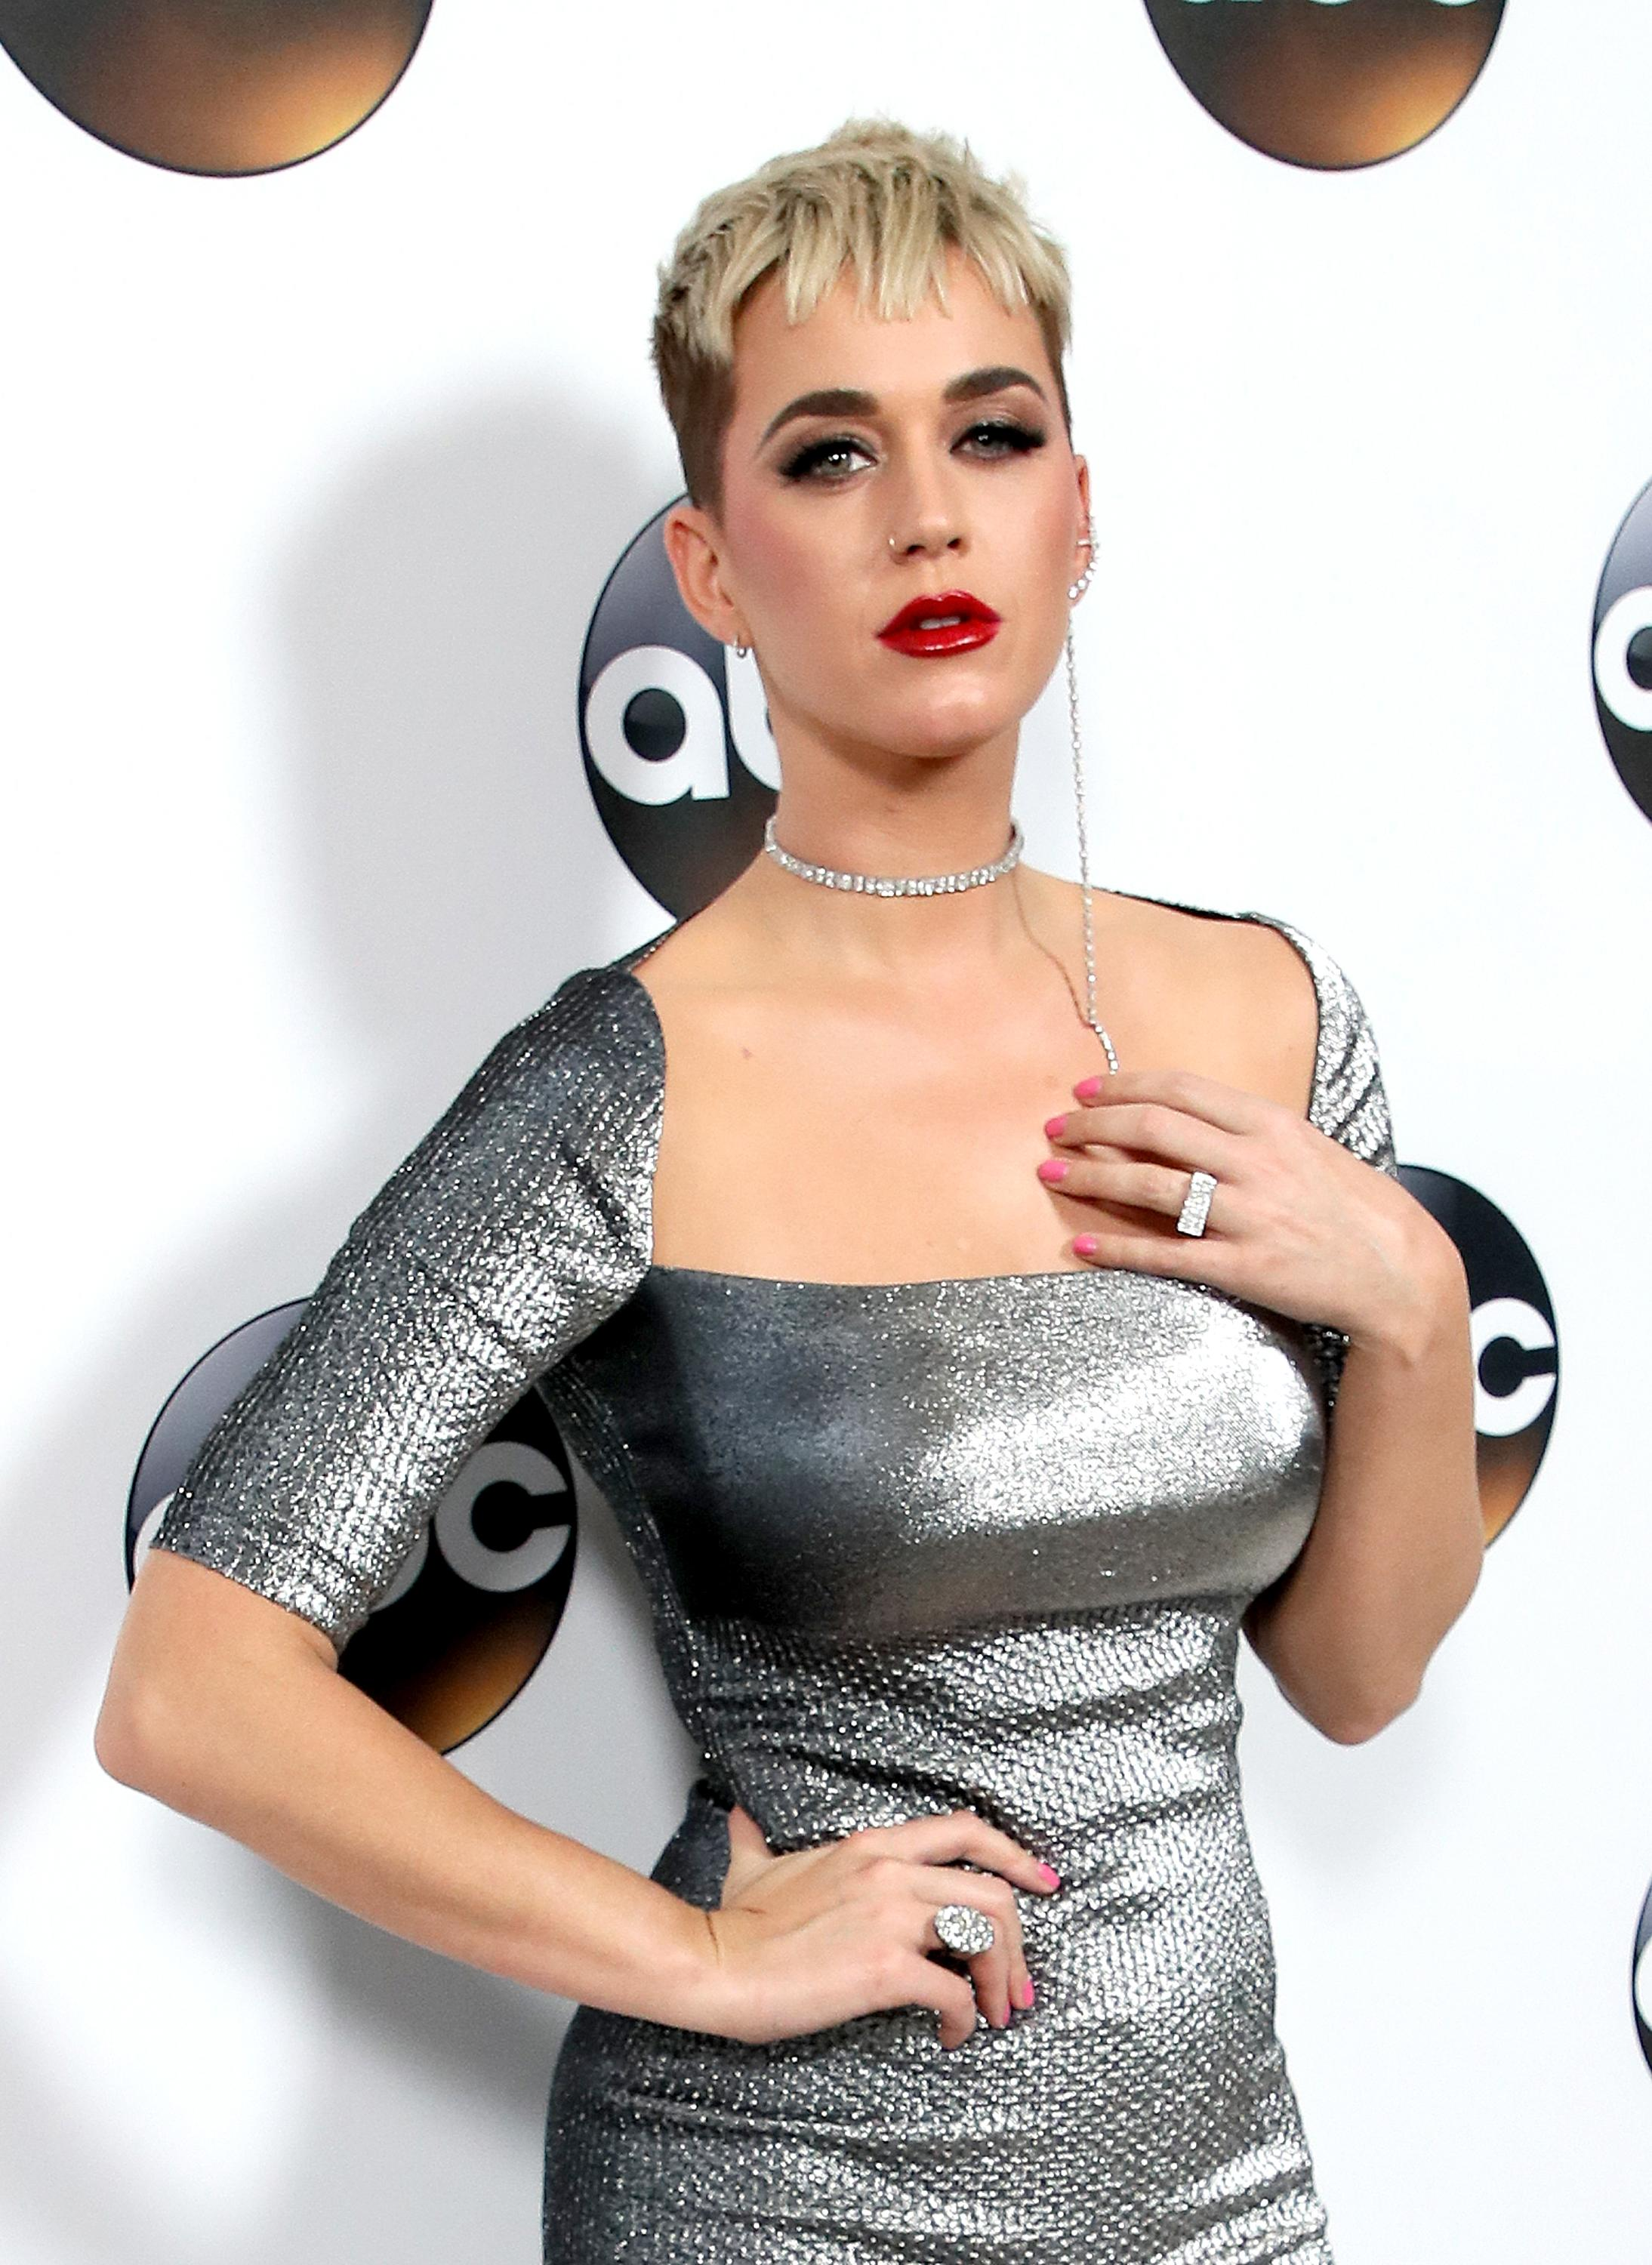 Nun calls out Katy Perry for continuing real estate battle, says singer is 'used to getting all she wants'